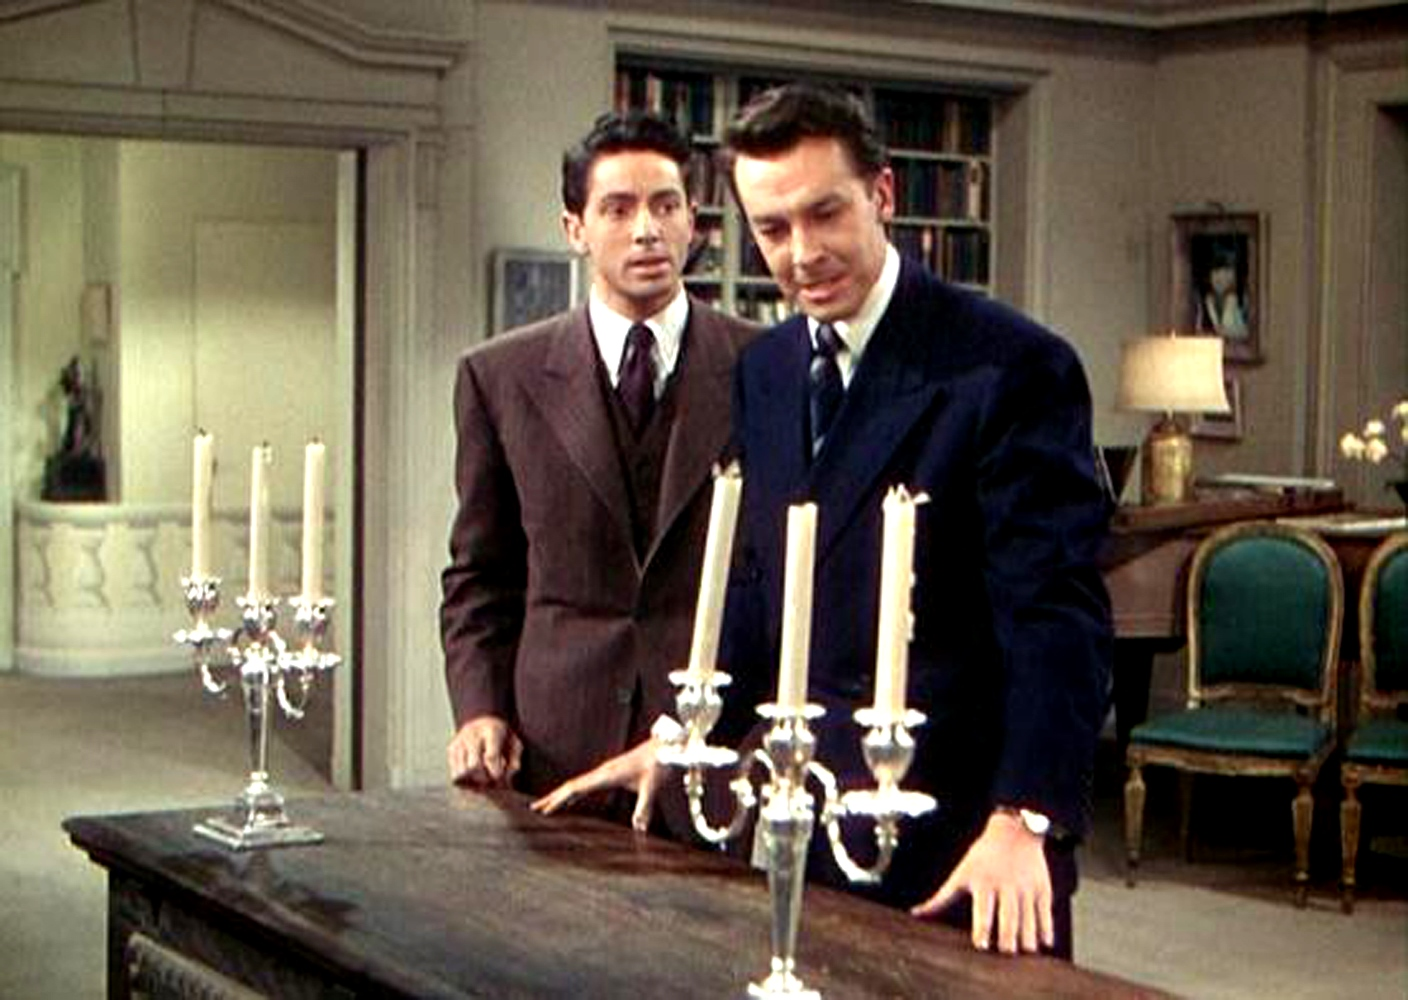 Farley Granger and John Dall prepare a dinner party using the chest containing a murdered body as the dinner table in Rope (1948)